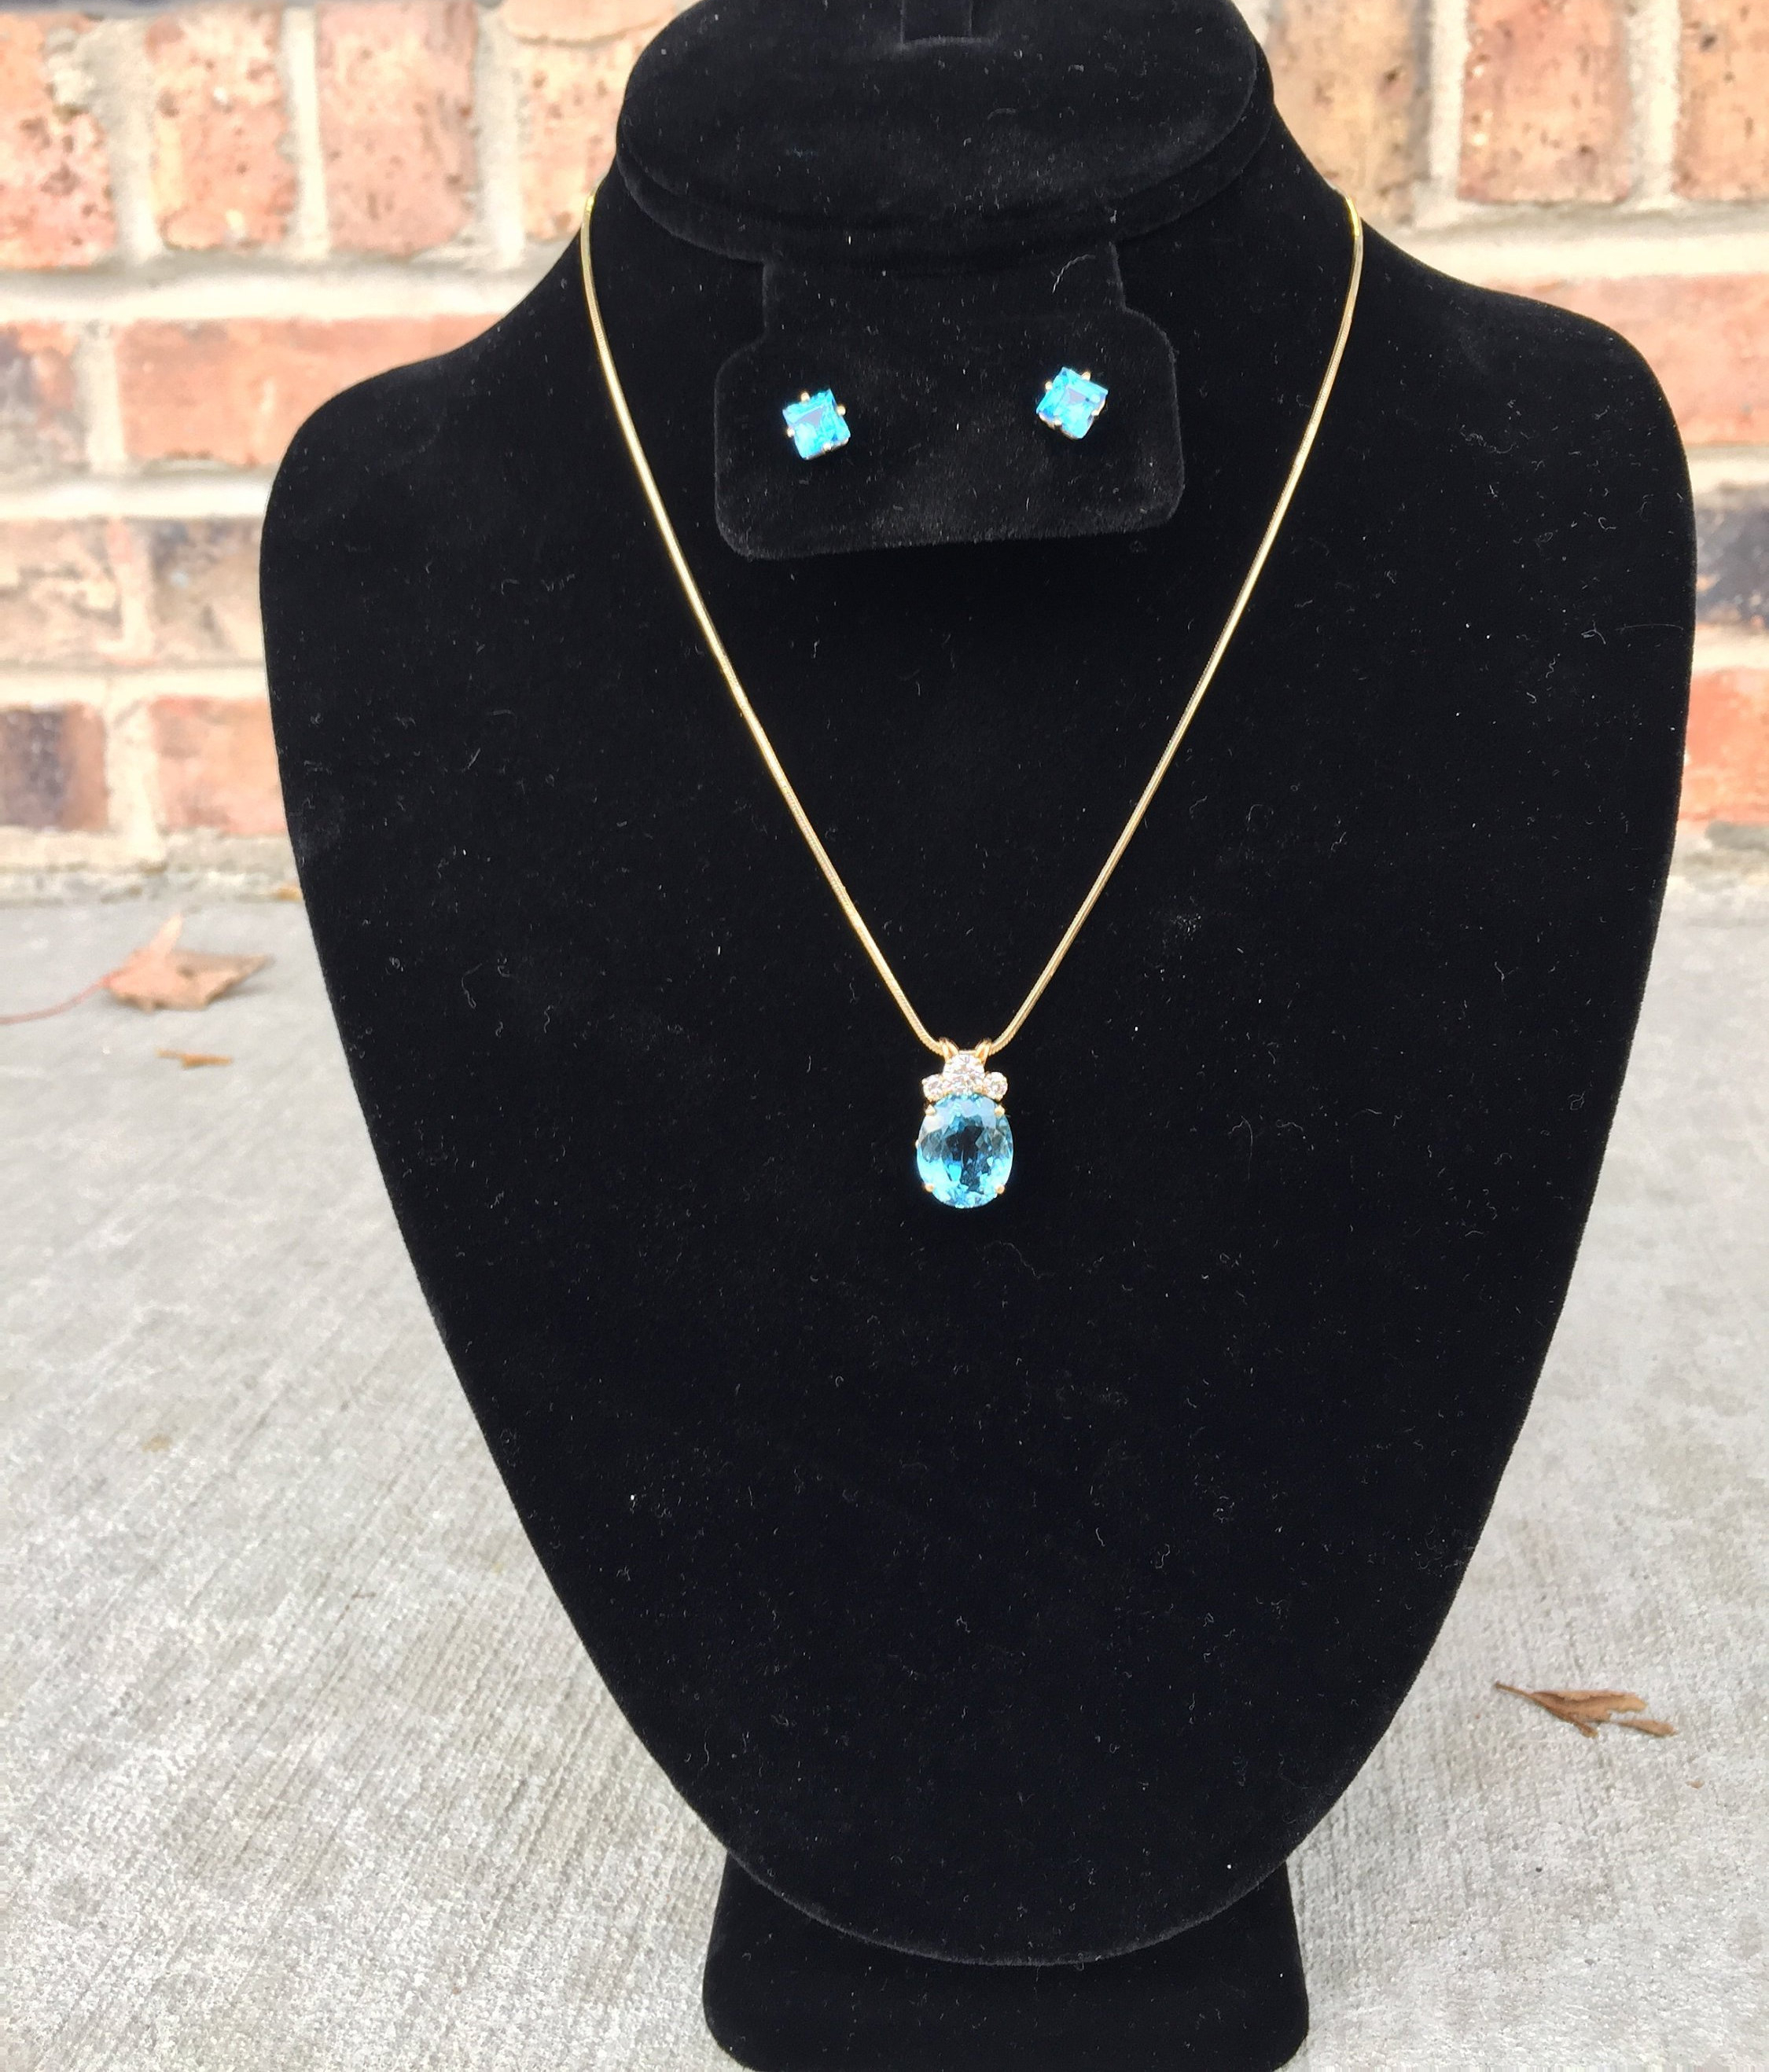 Aquamarine And 14k Gold With Diamonds Necklace Pendant And Earrings Set Pertaining To Most Up To Date Reversible Diamond, Sapphire And Aquamarine Pendant Necklaces (View 9 of 25)